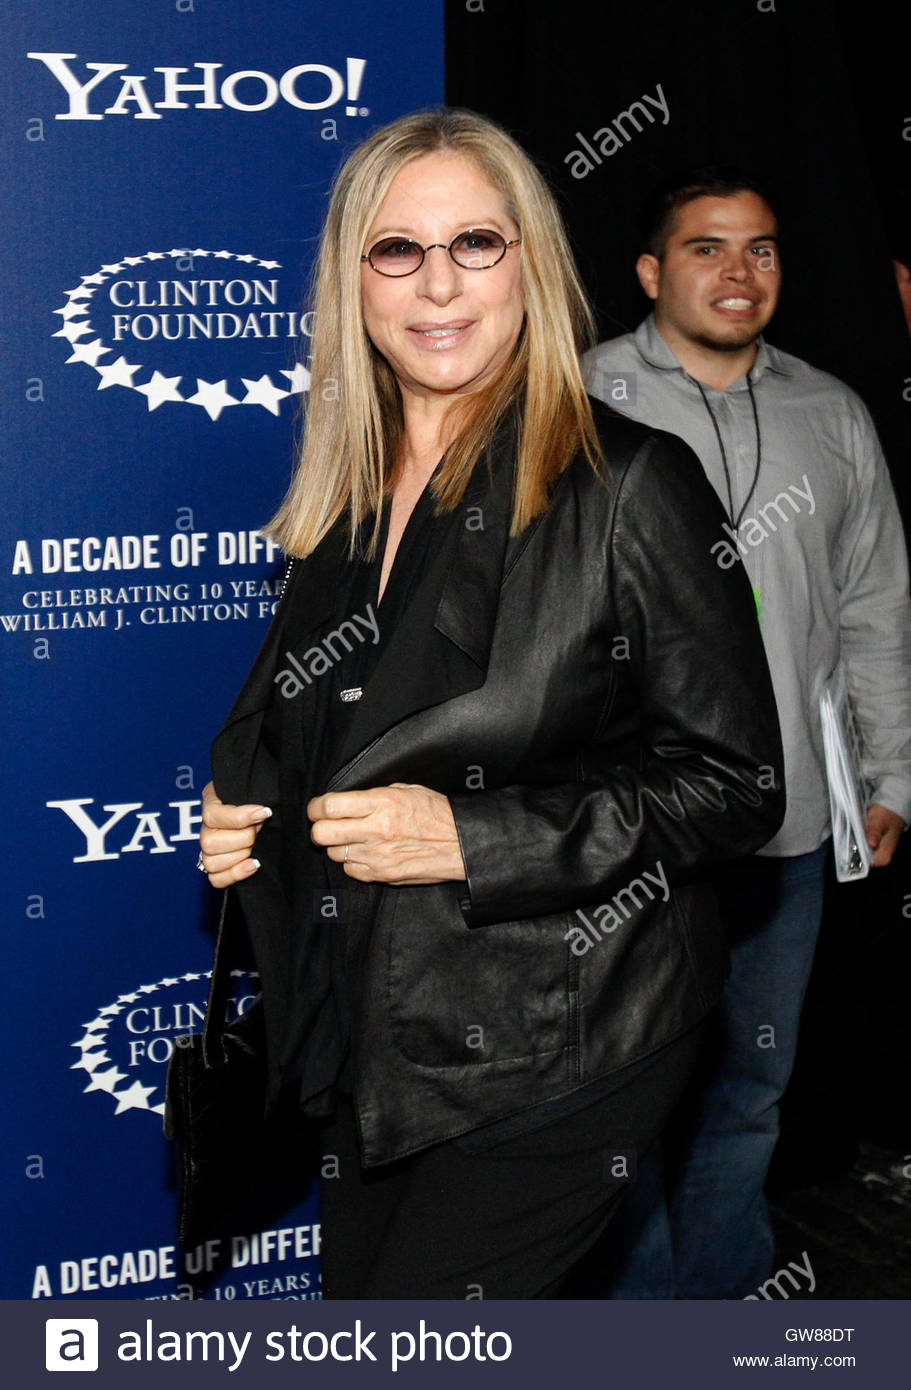 Leather jacket decade - Actress And Singer Barbra Streisand Arrives For A Decade Of Difference A Concert Celebrating 10 Years Of The William J Clinton Foundation At The